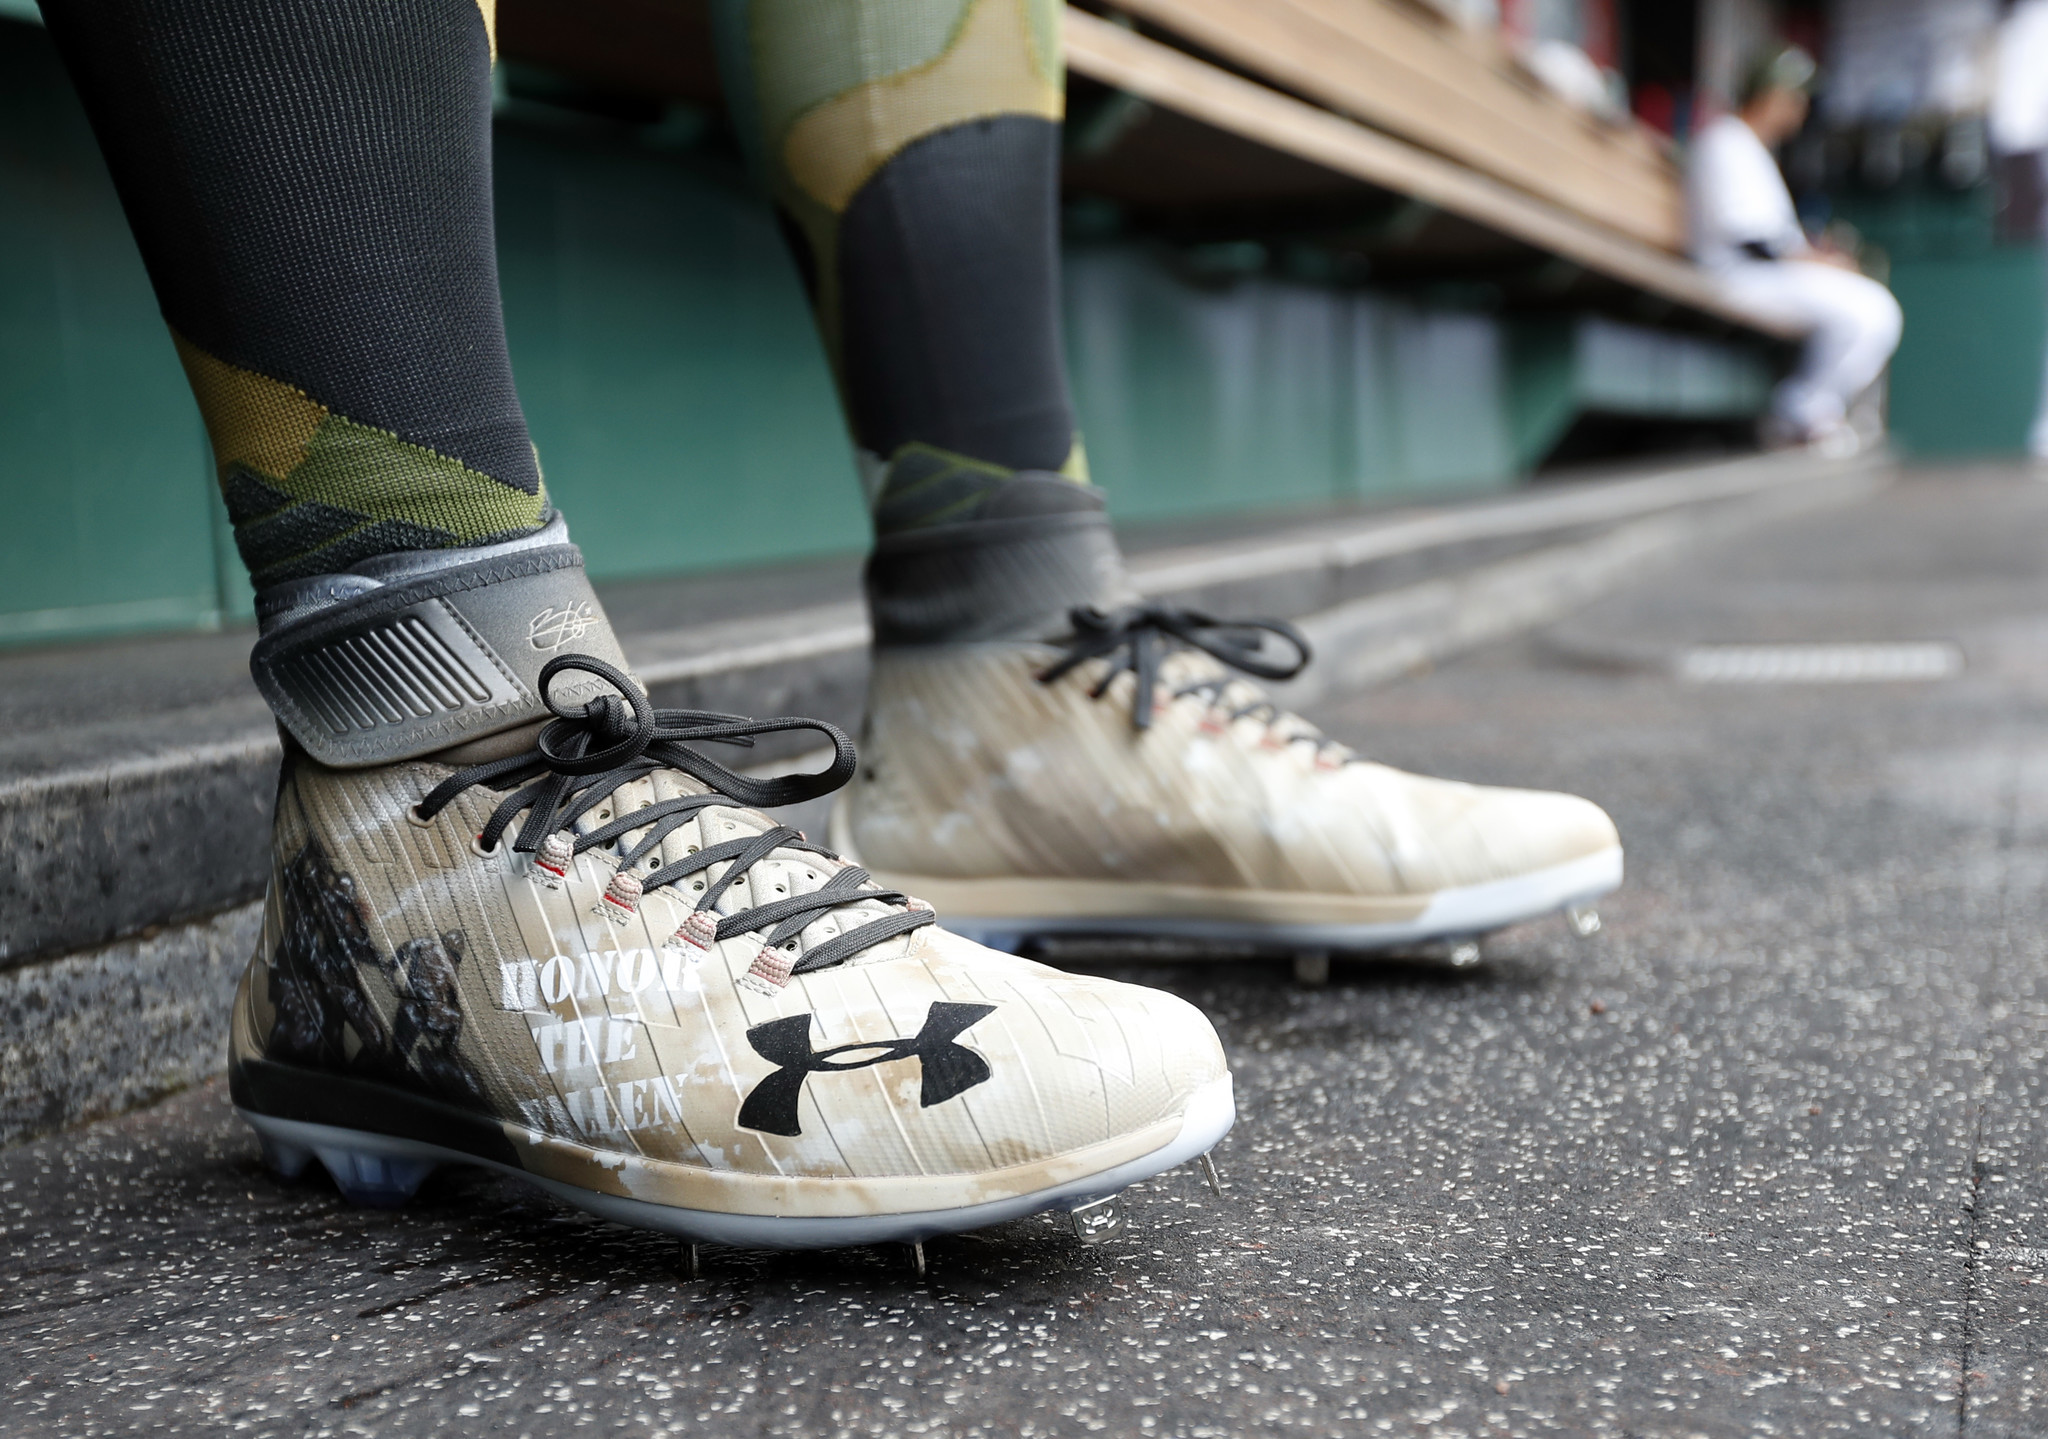 bf1f5359435f Nationals star, Under Armour endorser Bryce Harper shares Memorial Day  inspired shoes - Baltimore Sun